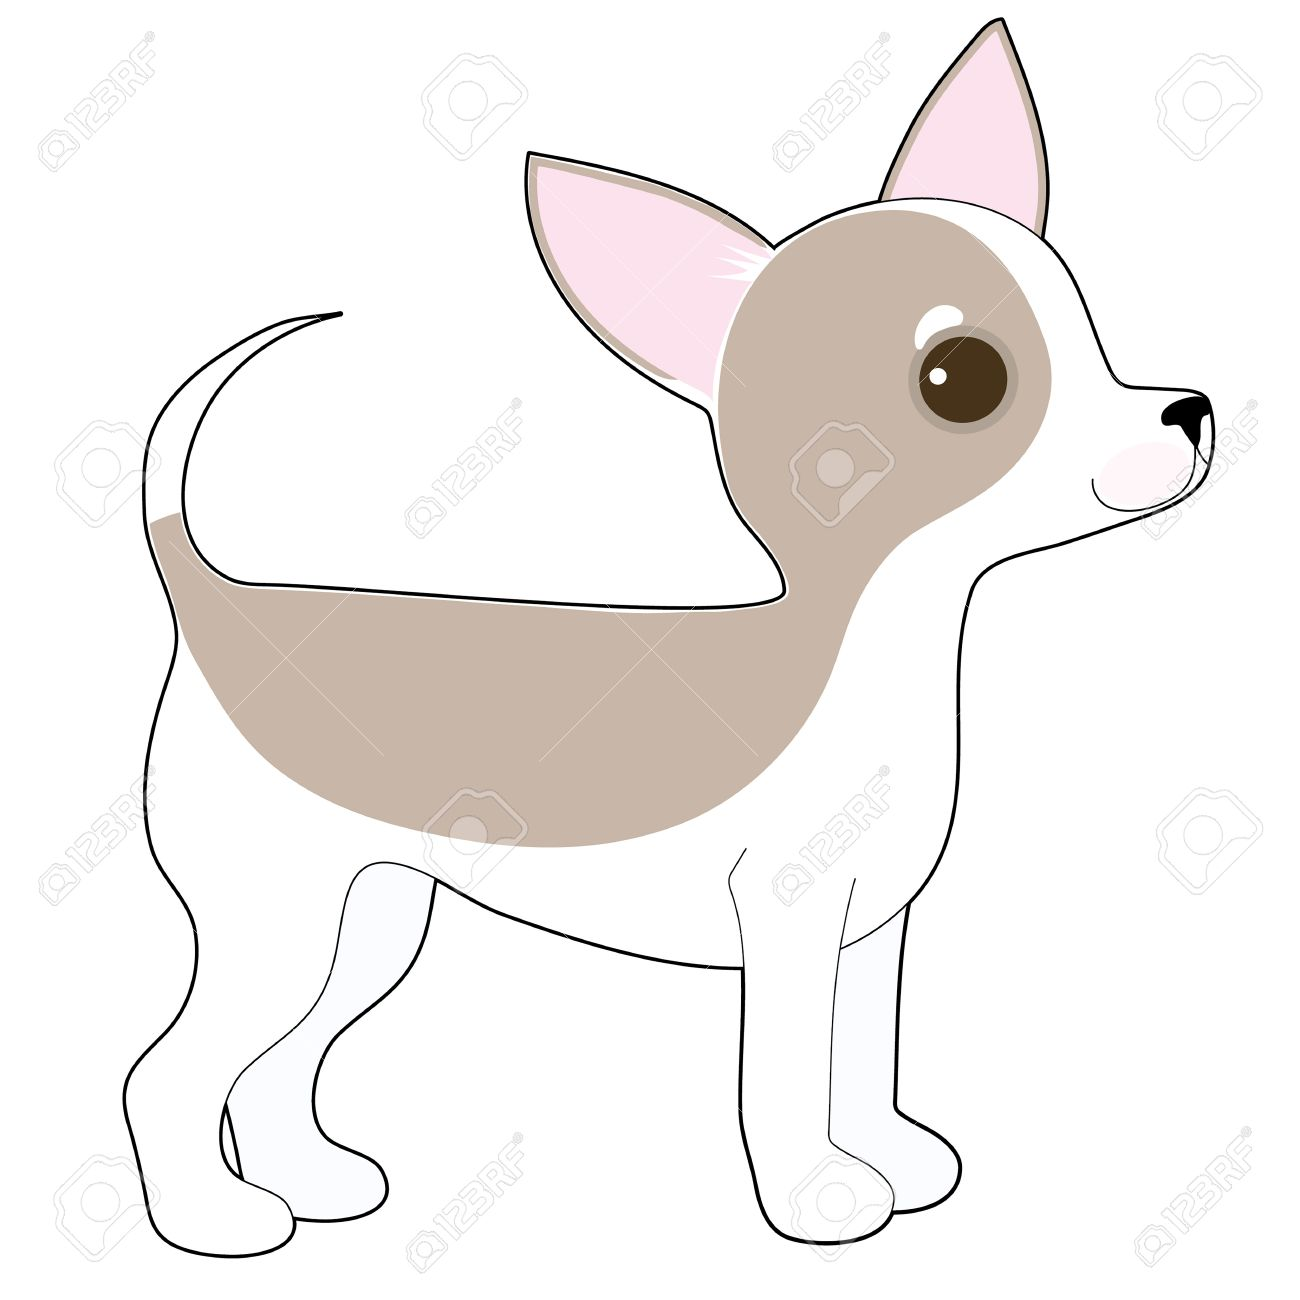 A Cartoon Drawing Of A Cute Little Chihuahua Royalty Free Cliparts ...